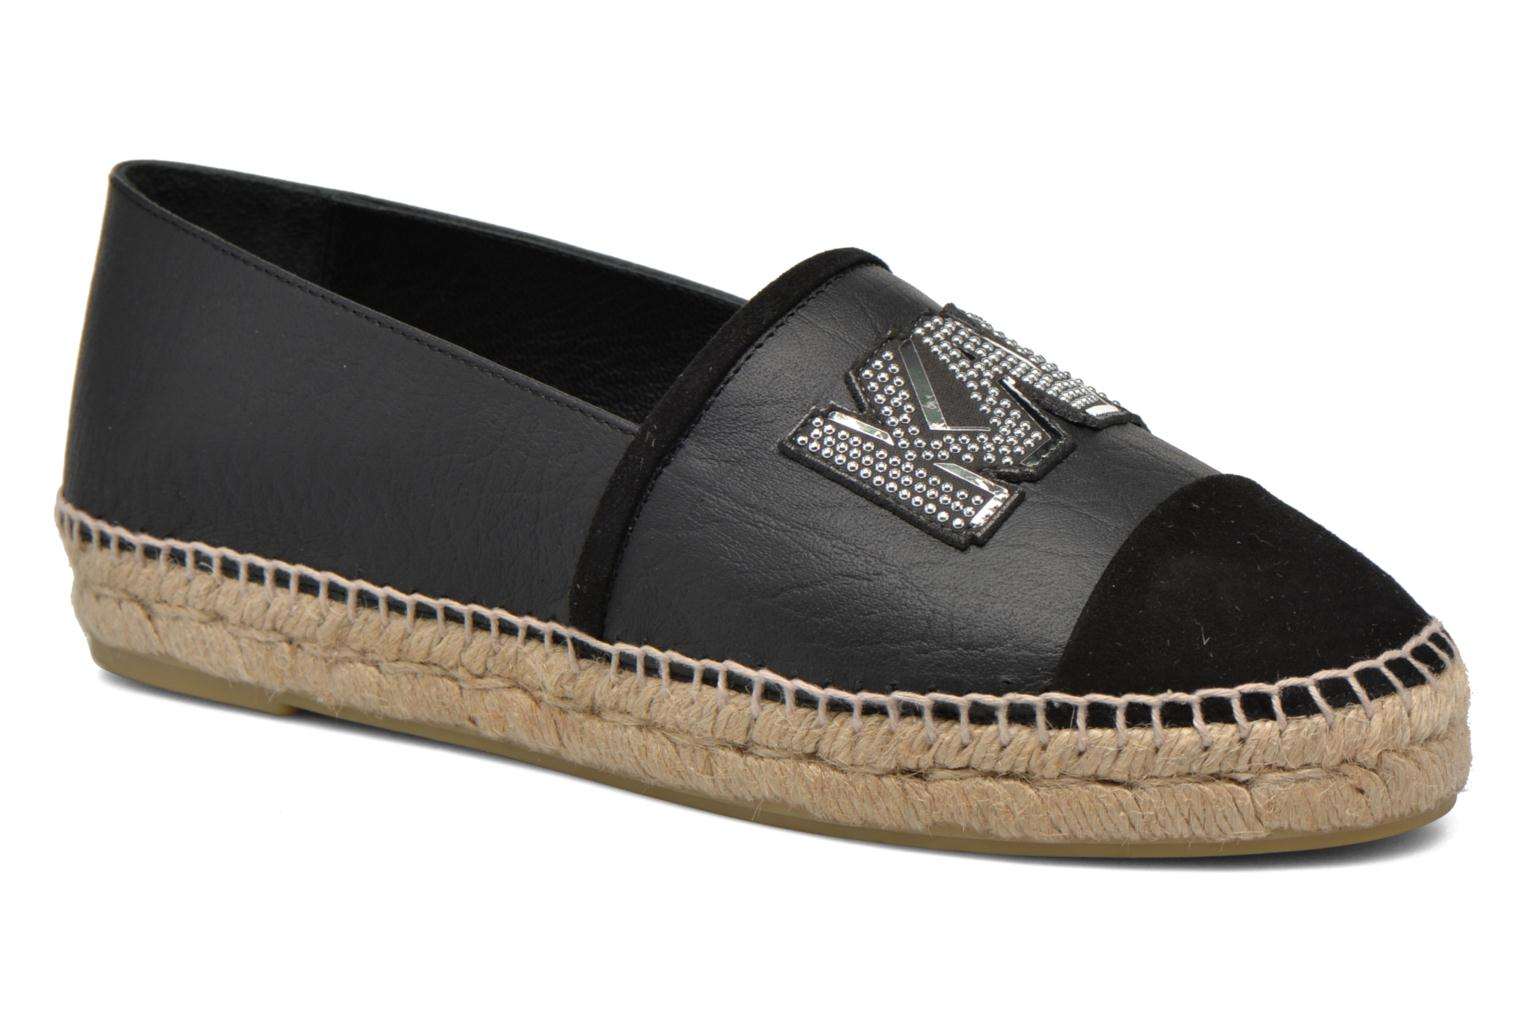 espadrilles-rocky-espadrille-by-karl-lagerfeld